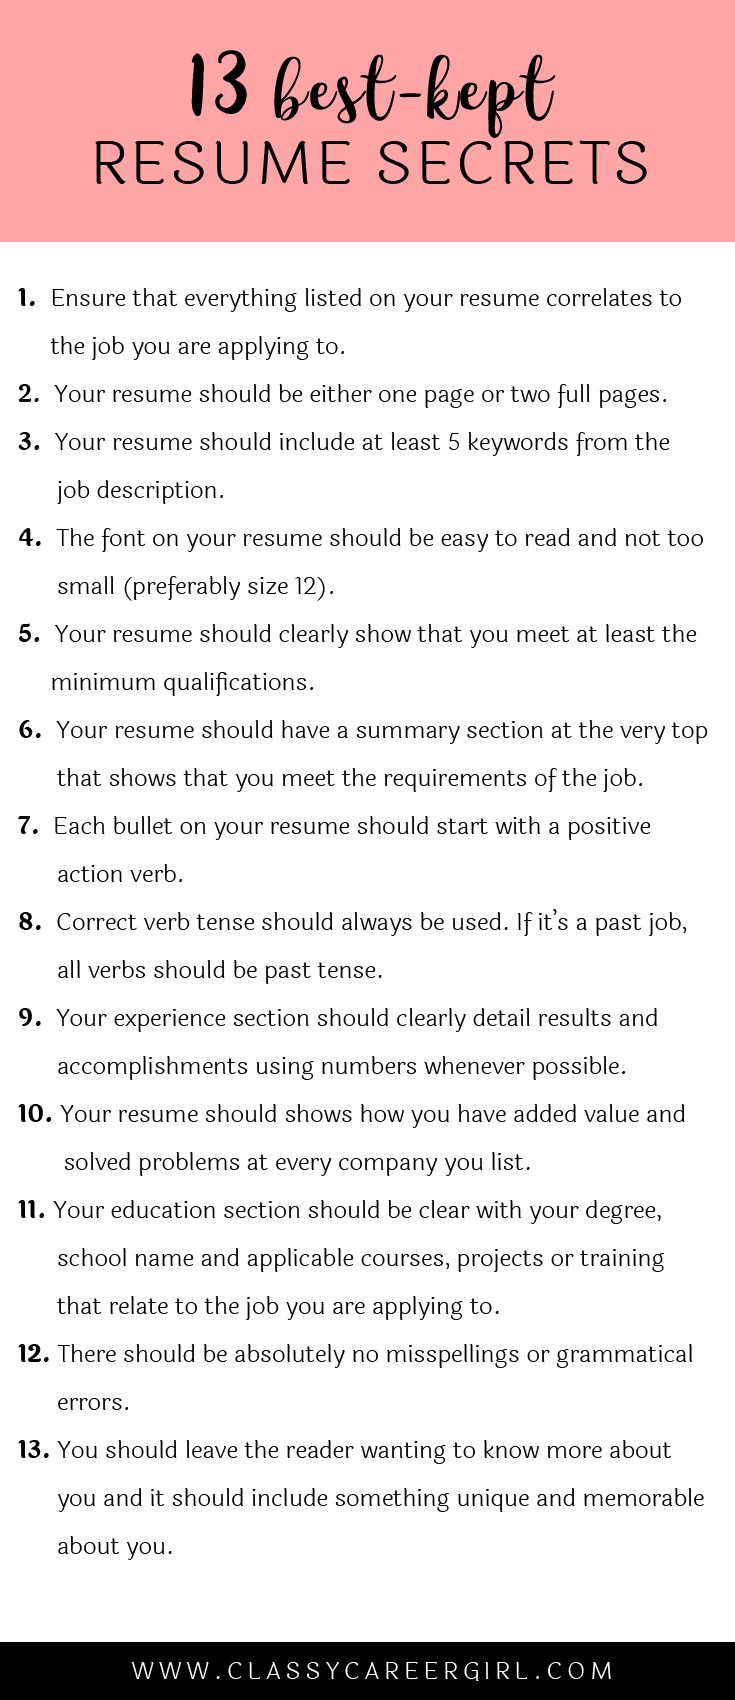 Opposenewapstandardsus  Gorgeous  Ideas About Resume On Pinterest  Cv Format Resume Cv And  With Handsome Some Hiring Managers Will Toss Your Resume Out If You Dont Know These  With Amazing Sample Resume Profile Also Maintenance Manager Resume In Addition Example Of A Resume For A Job And Pediatrician Resume As Well As How To Name A Resume Additionally Executive Assistant Resume Examples From Pinterestcom With Opposenewapstandardsus  Handsome  Ideas About Resume On Pinterest  Cv Format Resume Cv And  With Amazing Some Hiring Managers Will Toss Your Resume Out If You Dont Know These  And Gorgeous Sample Resume Profile Also Maintenance Manager Resume In Addition Example Of A Resume For A Job From Pinterestcom